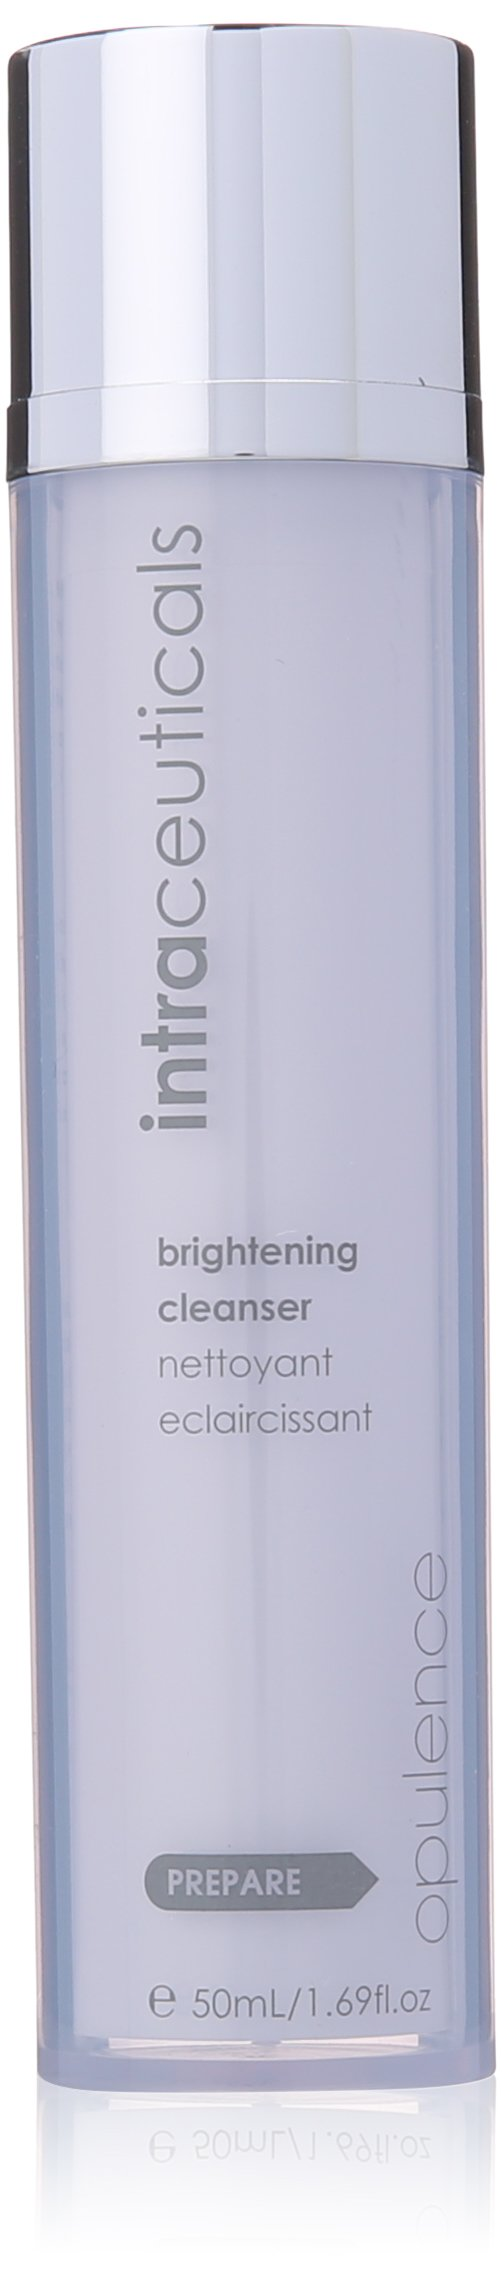 Intraceuticals Opulence Brightening Cleanser, 1.69 Fluid Ounce